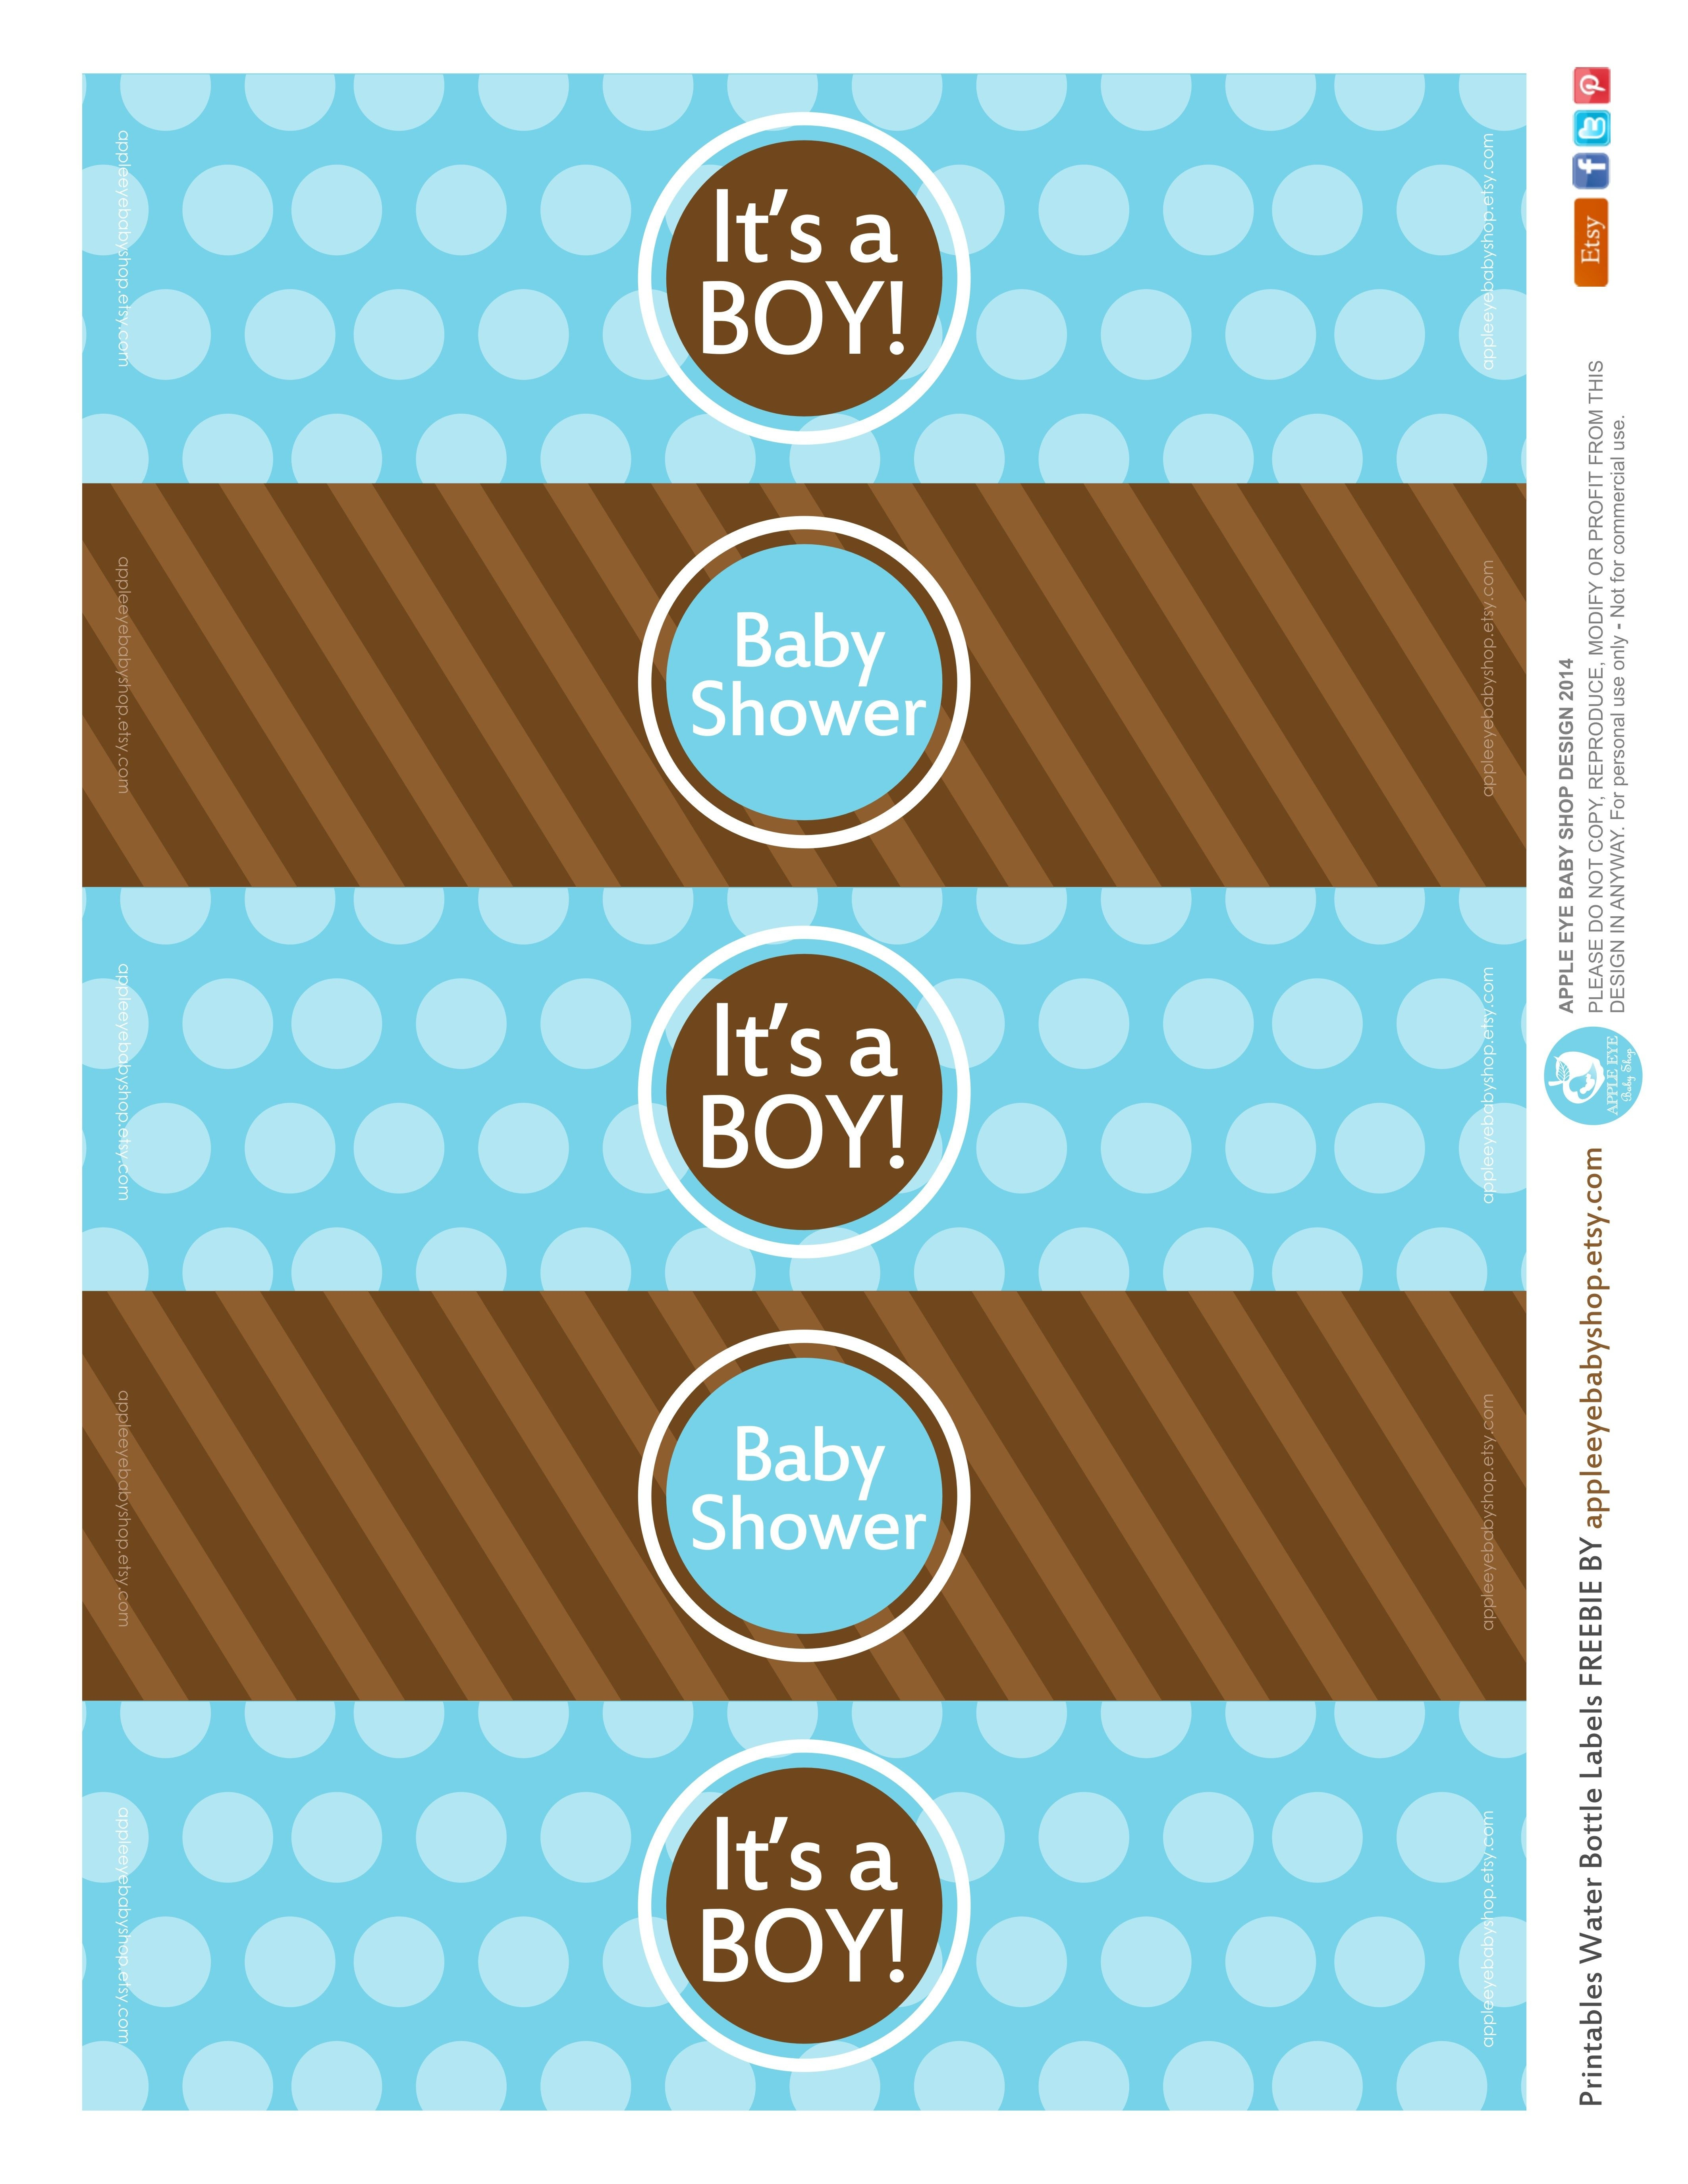 All Sizes   Free Printable   Water Bottle Labels Baby Boyapple - Free Printable Water Bottle Labels For Baby Shower